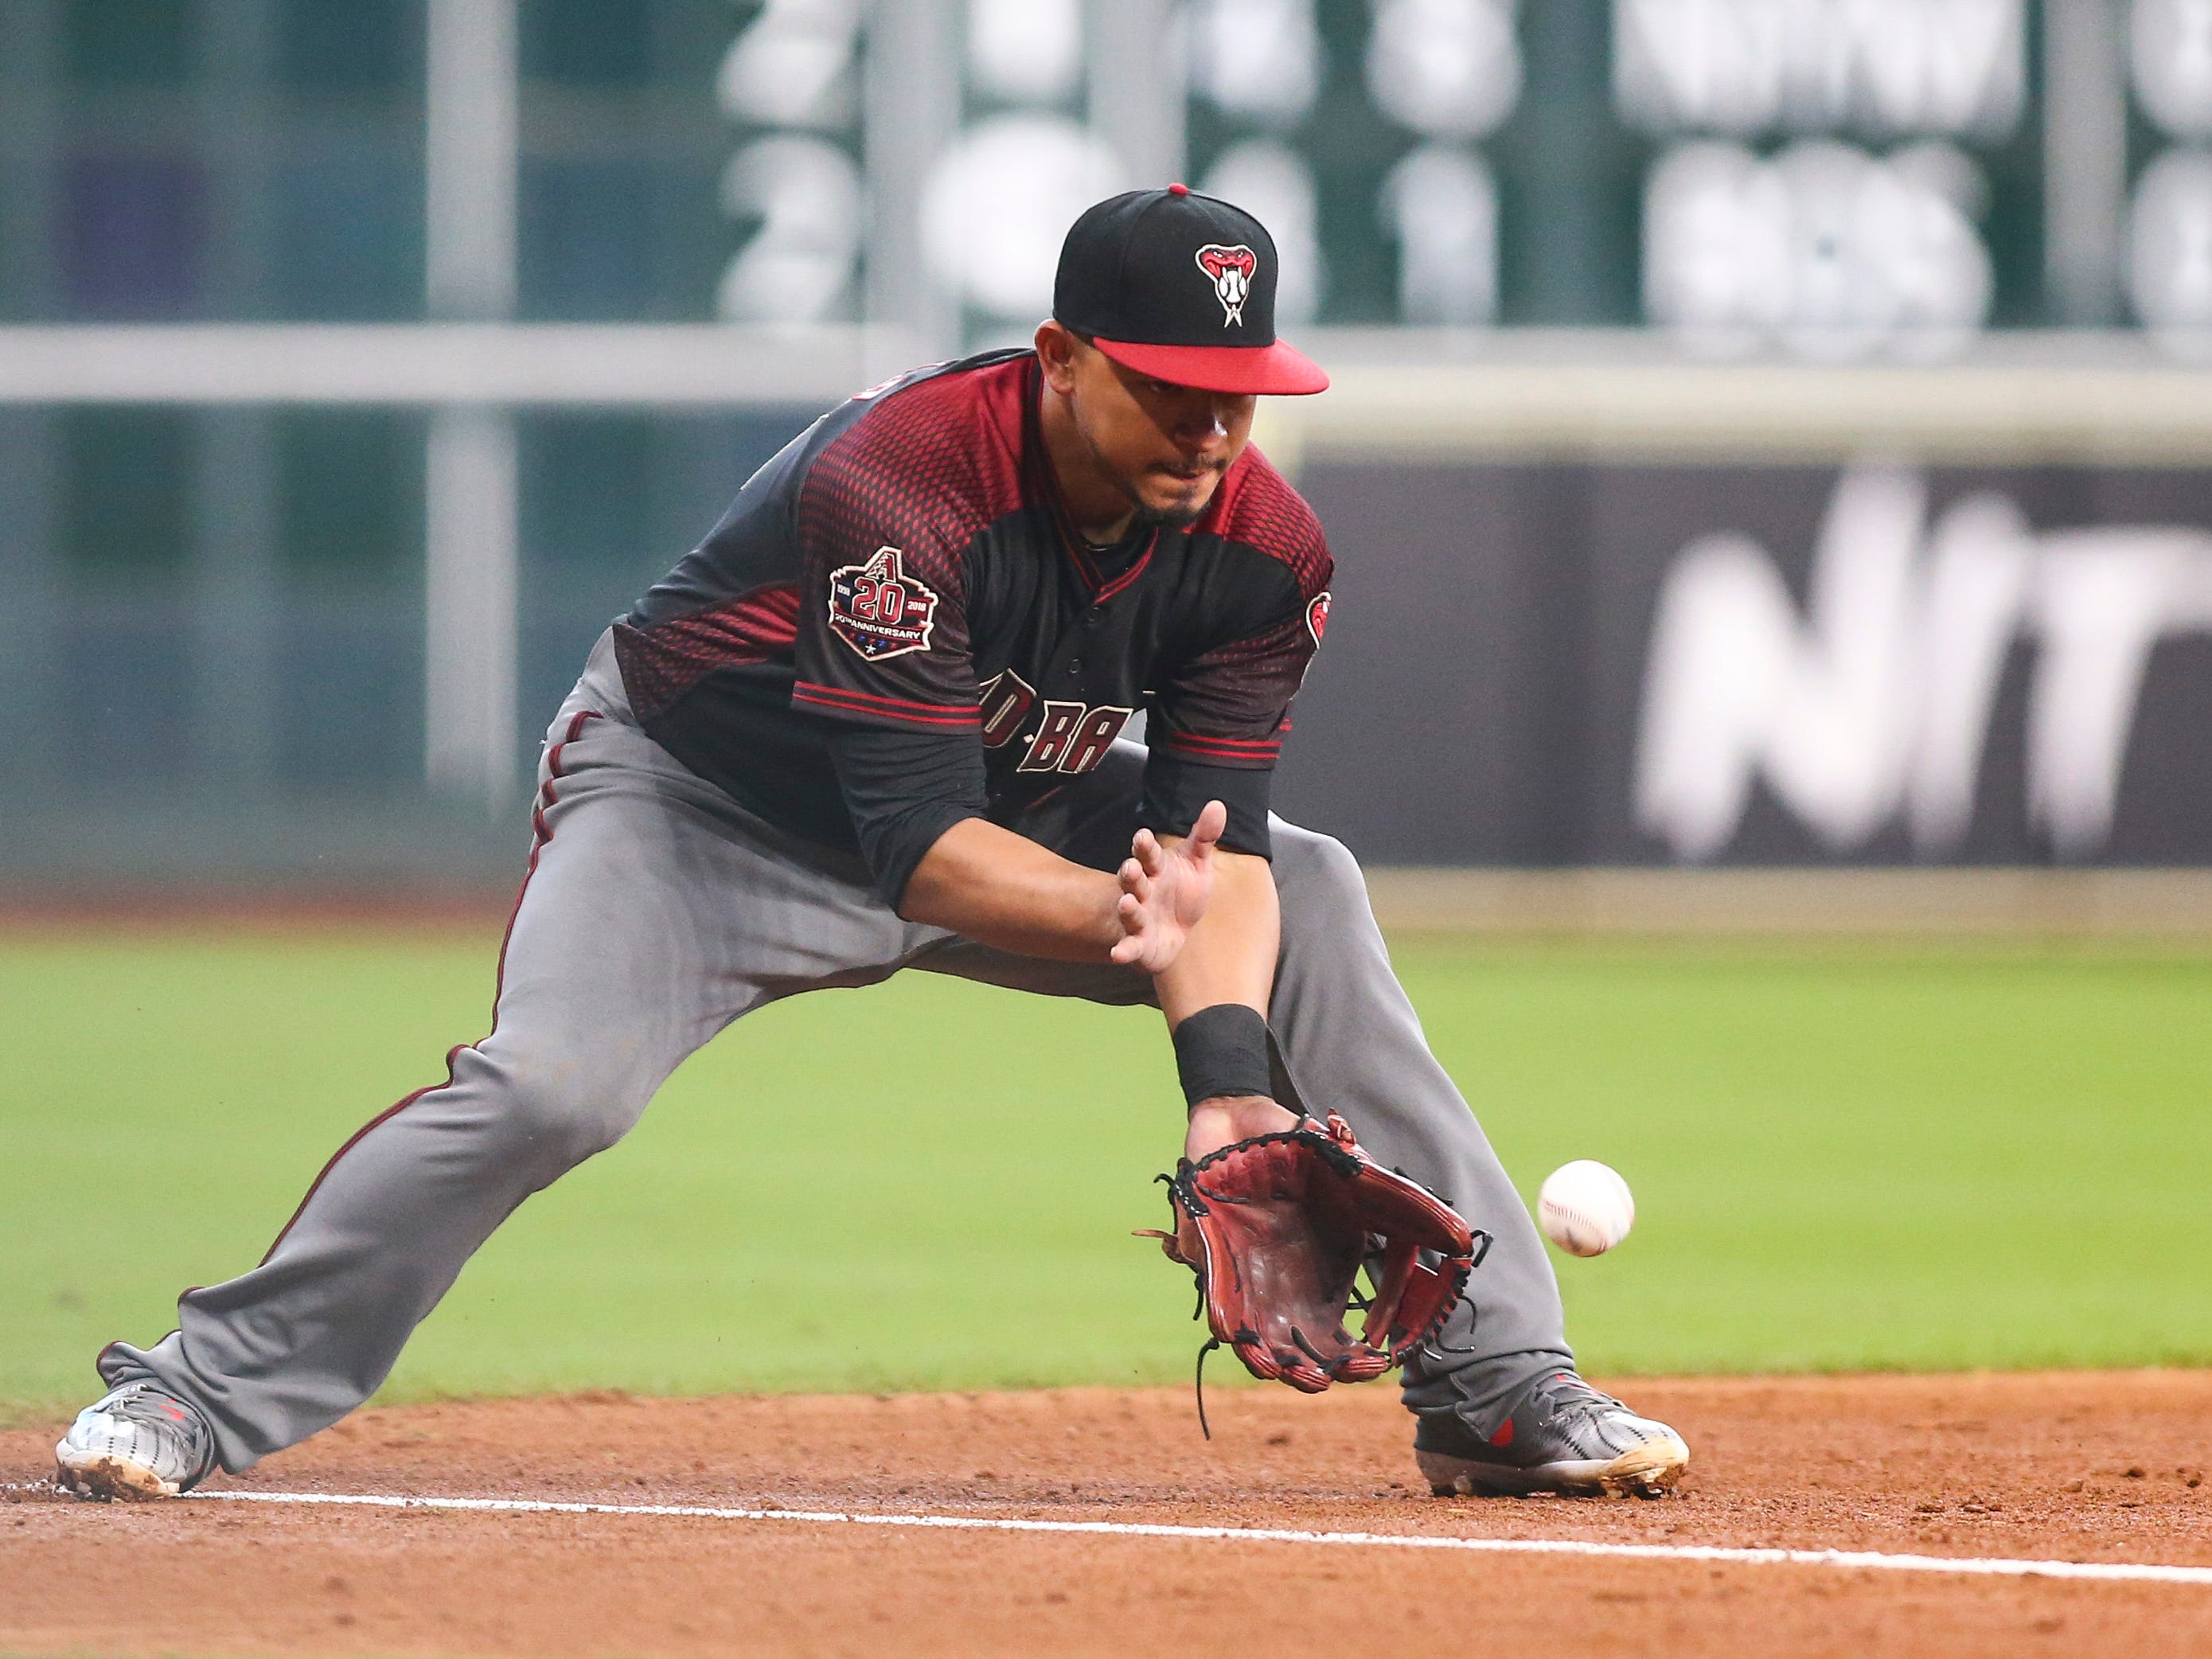 Sep 16, 2018; Houston, TX, USA; Arizona Diamondbacks third baseman Eduardo Escobar (14) fields a ground ball during the fourth inning against the Houston Astros at Minute Maid Park. Mandatory Credit: Troy Taormina-USA TODAY Sports